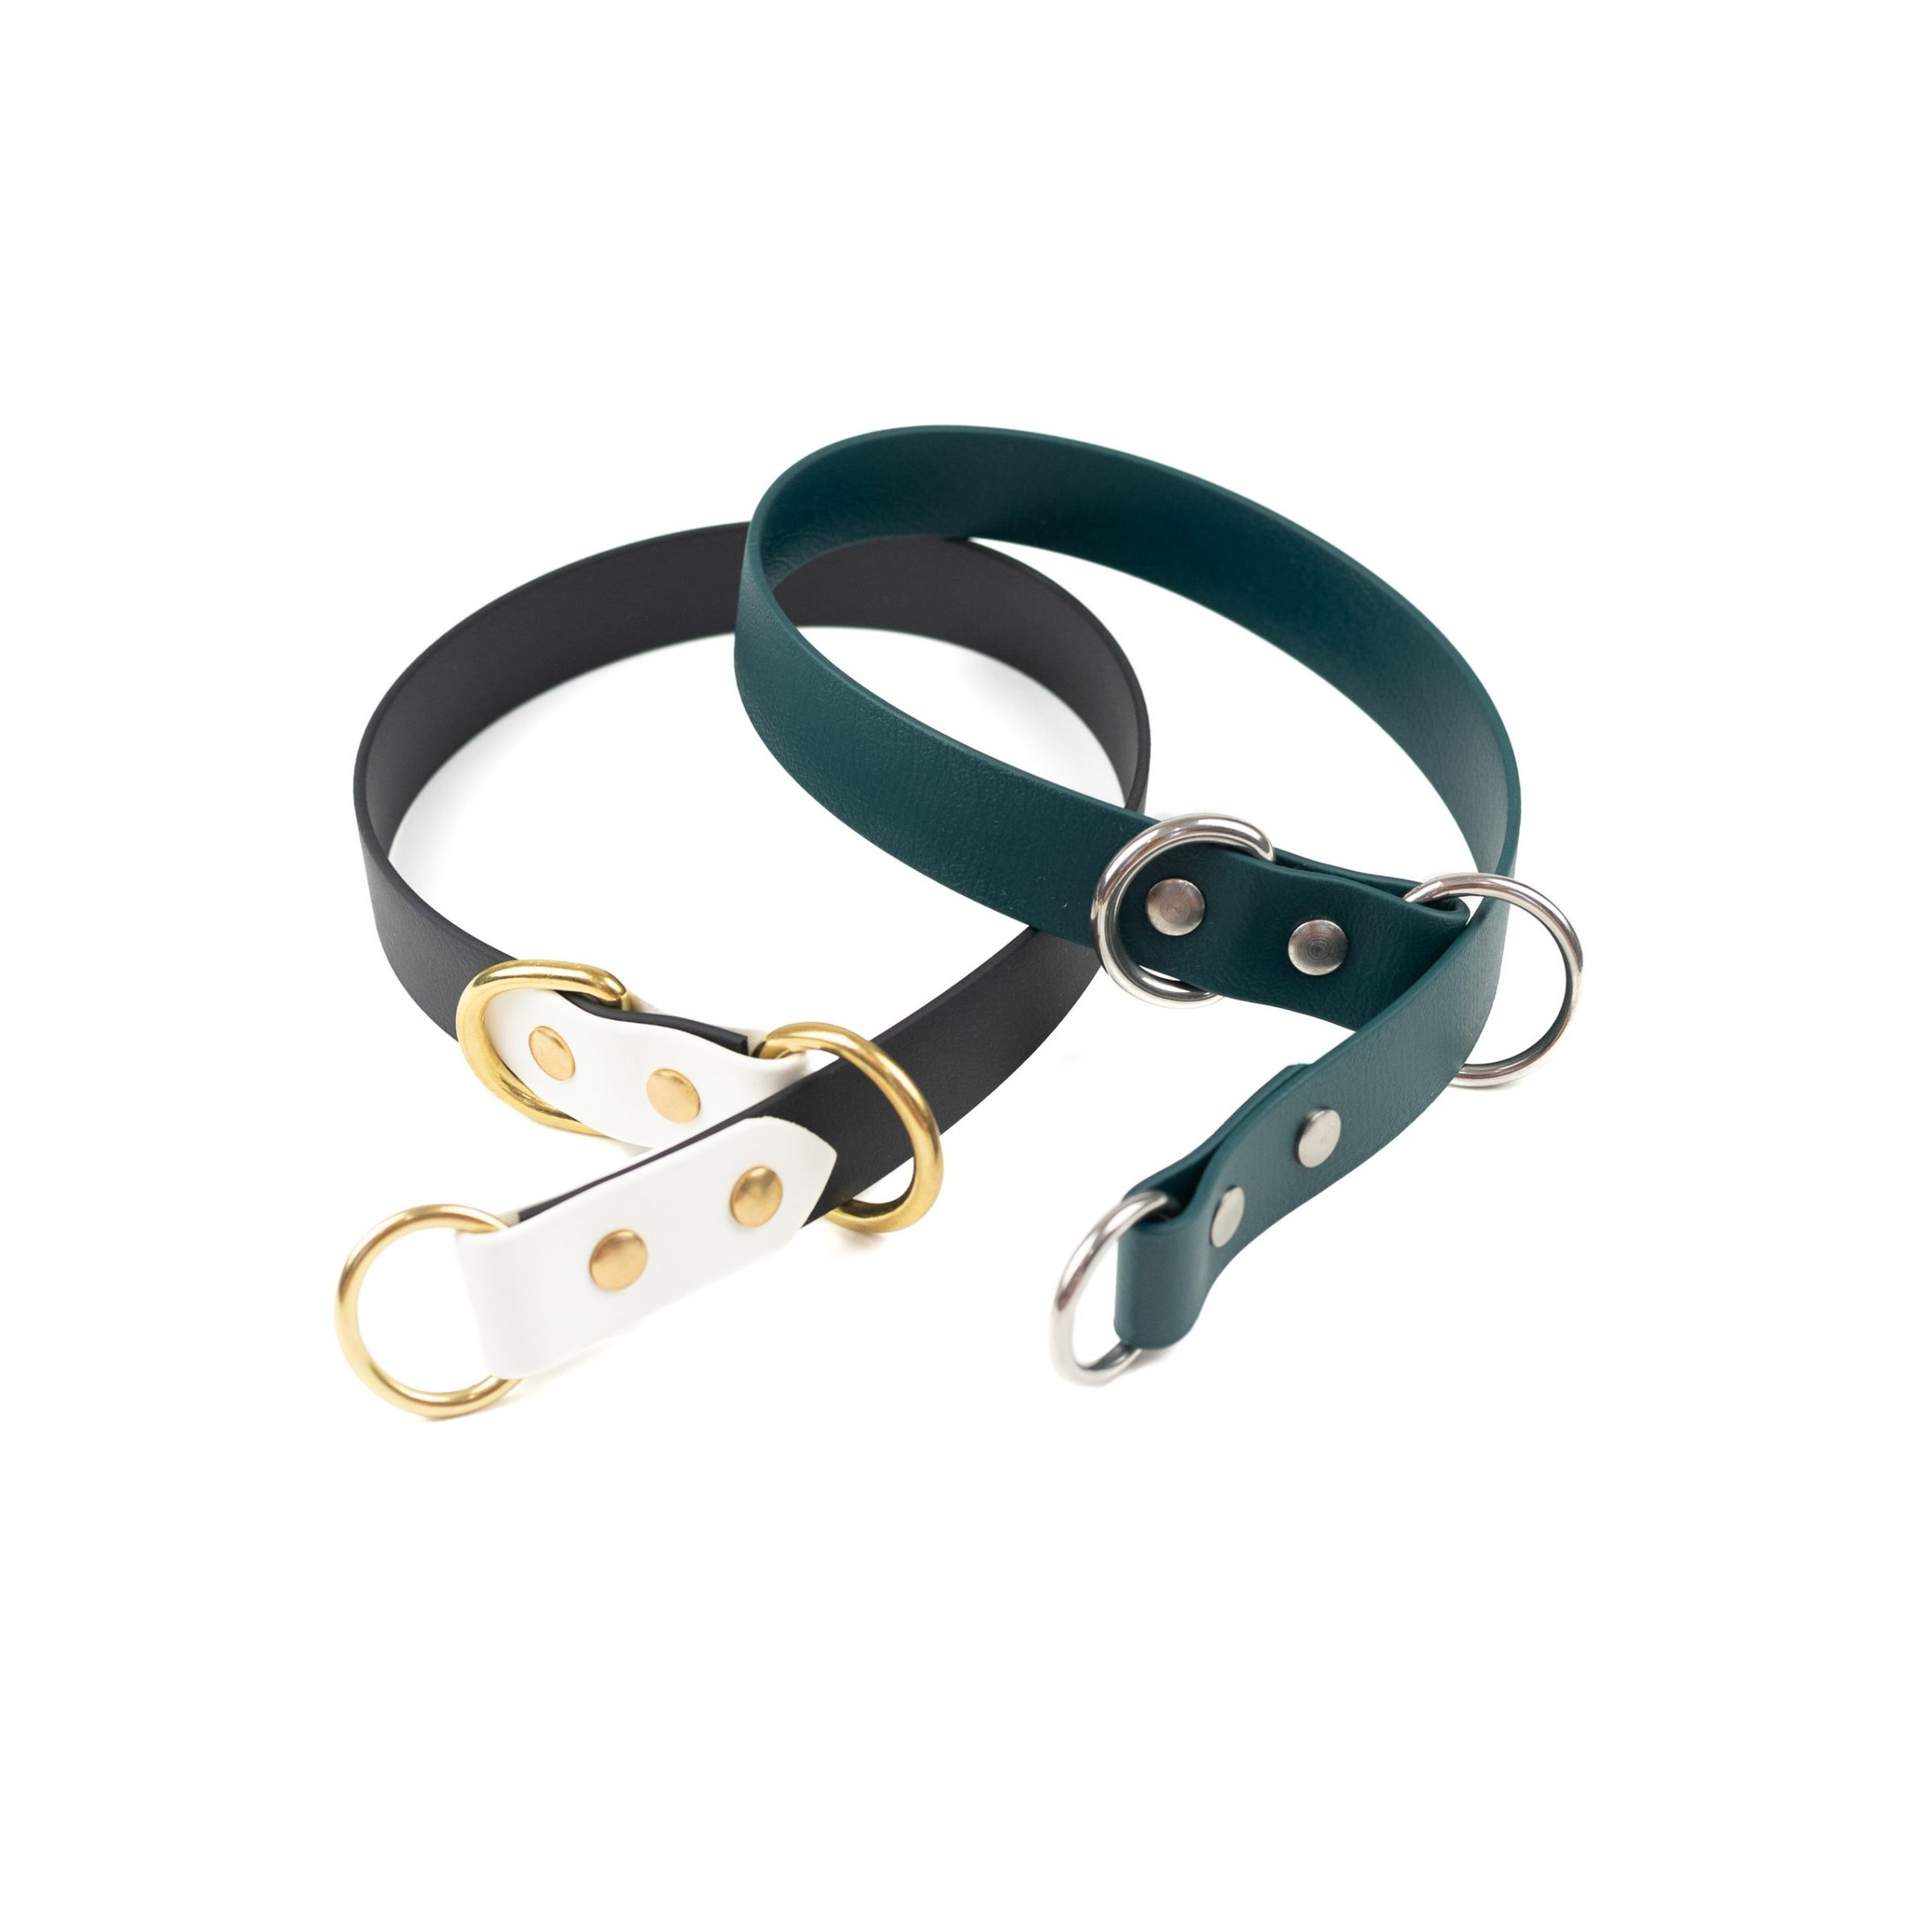 full slip collar in black and white and gold and forest green and silver